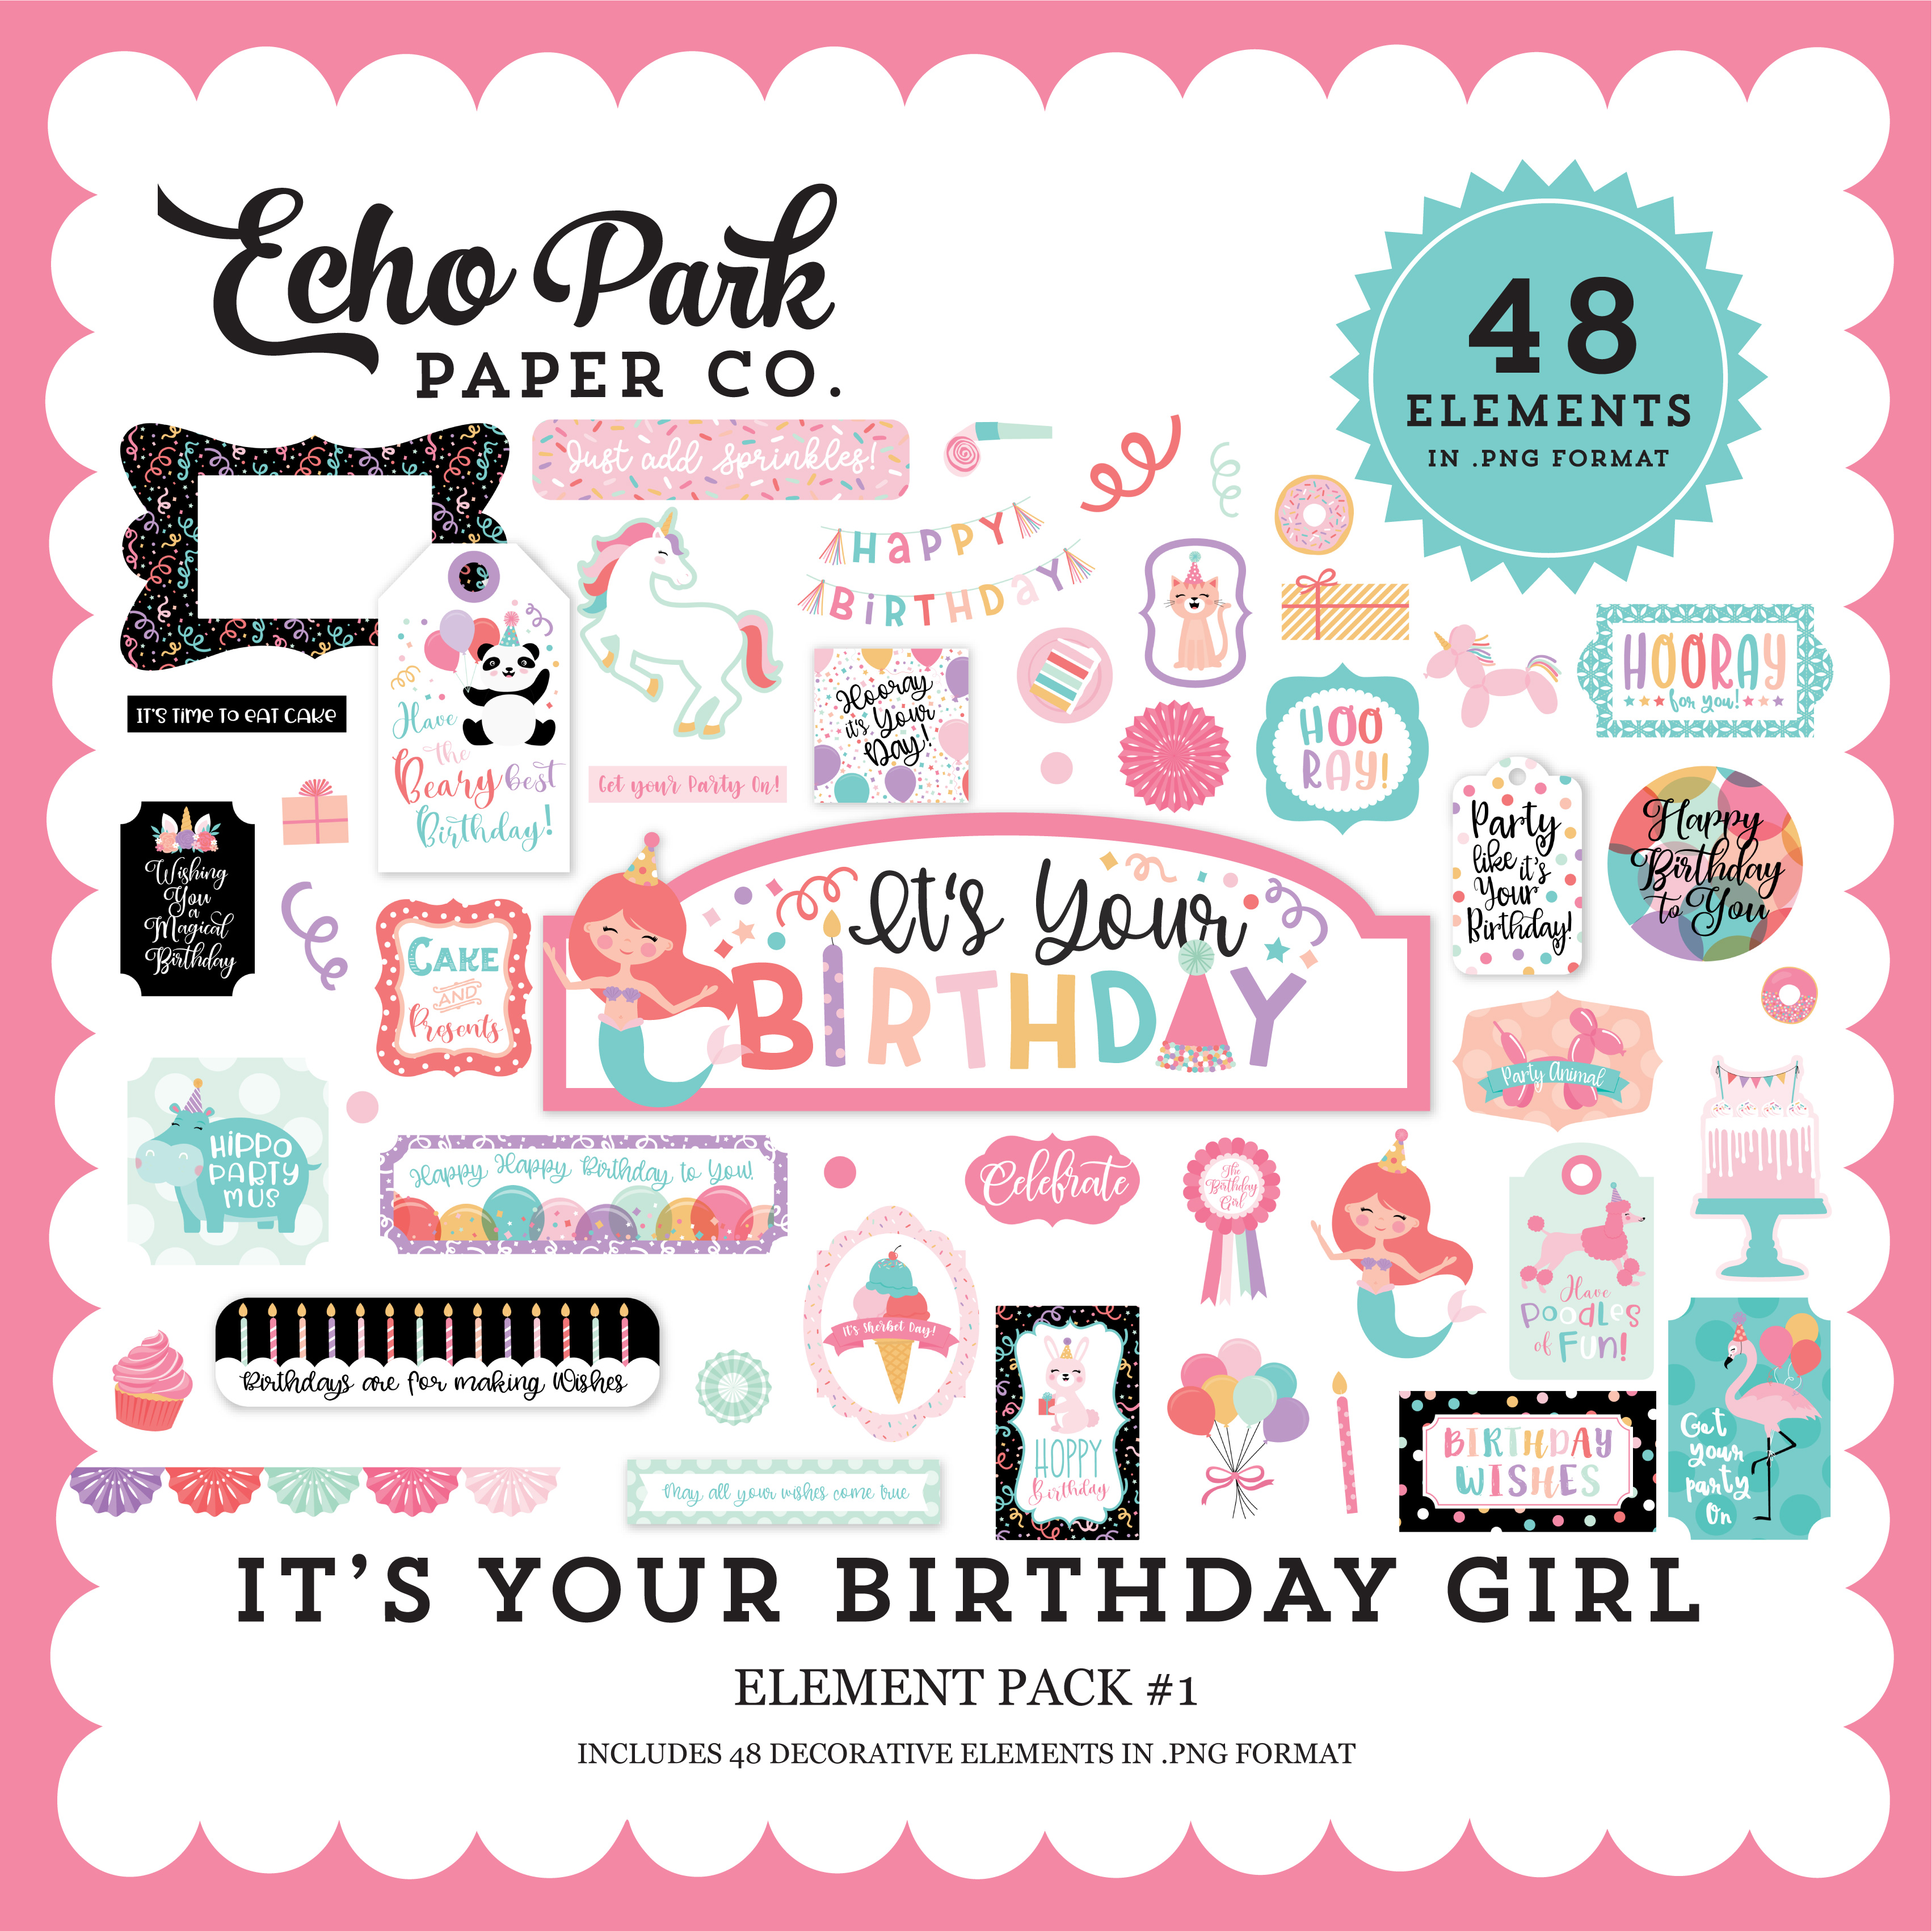 It's Your Birthday Girl Element Pack #1